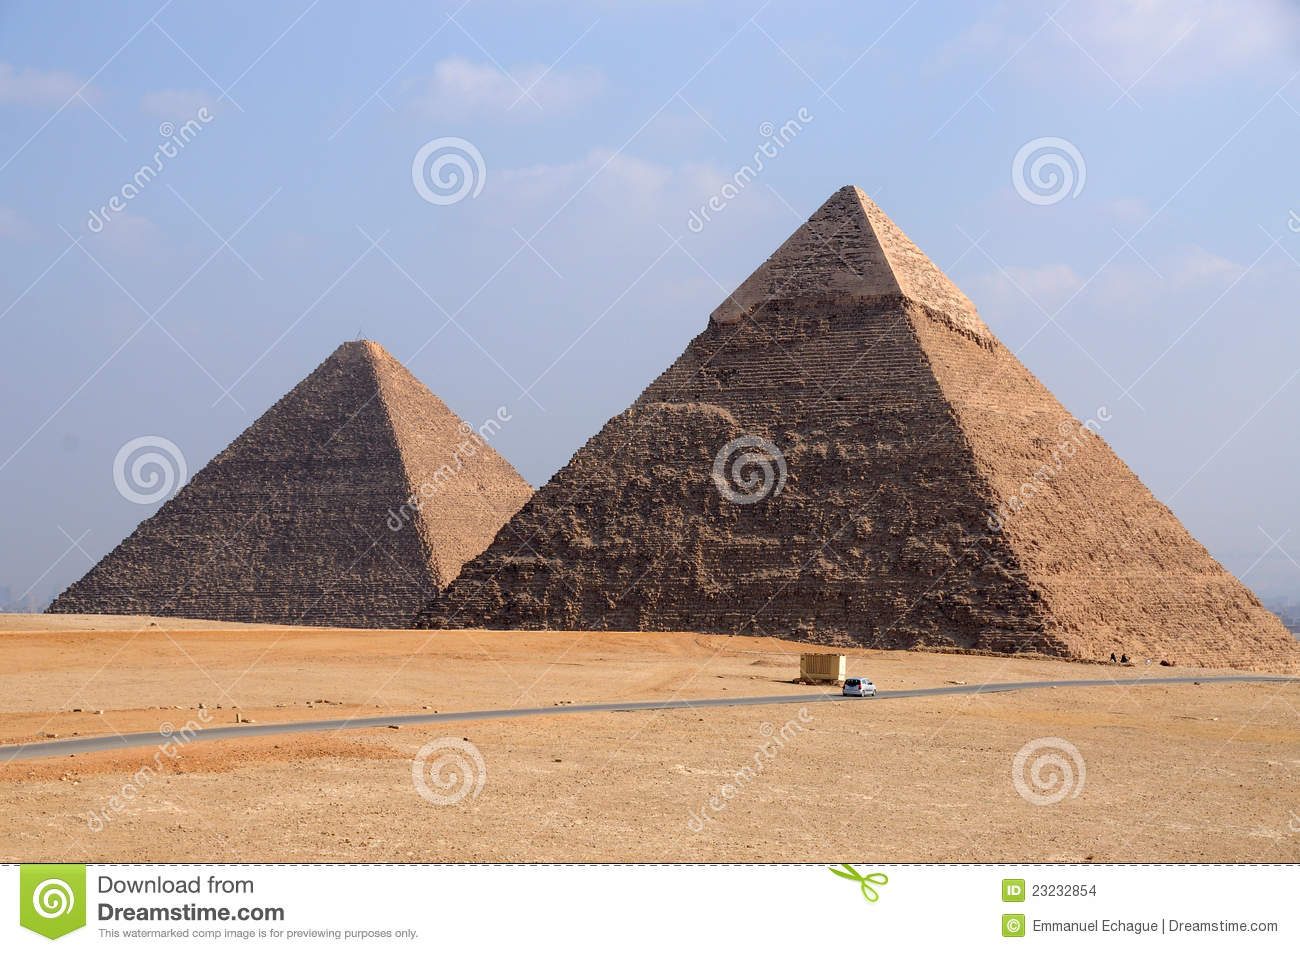 Giza Pyramids of Egypt